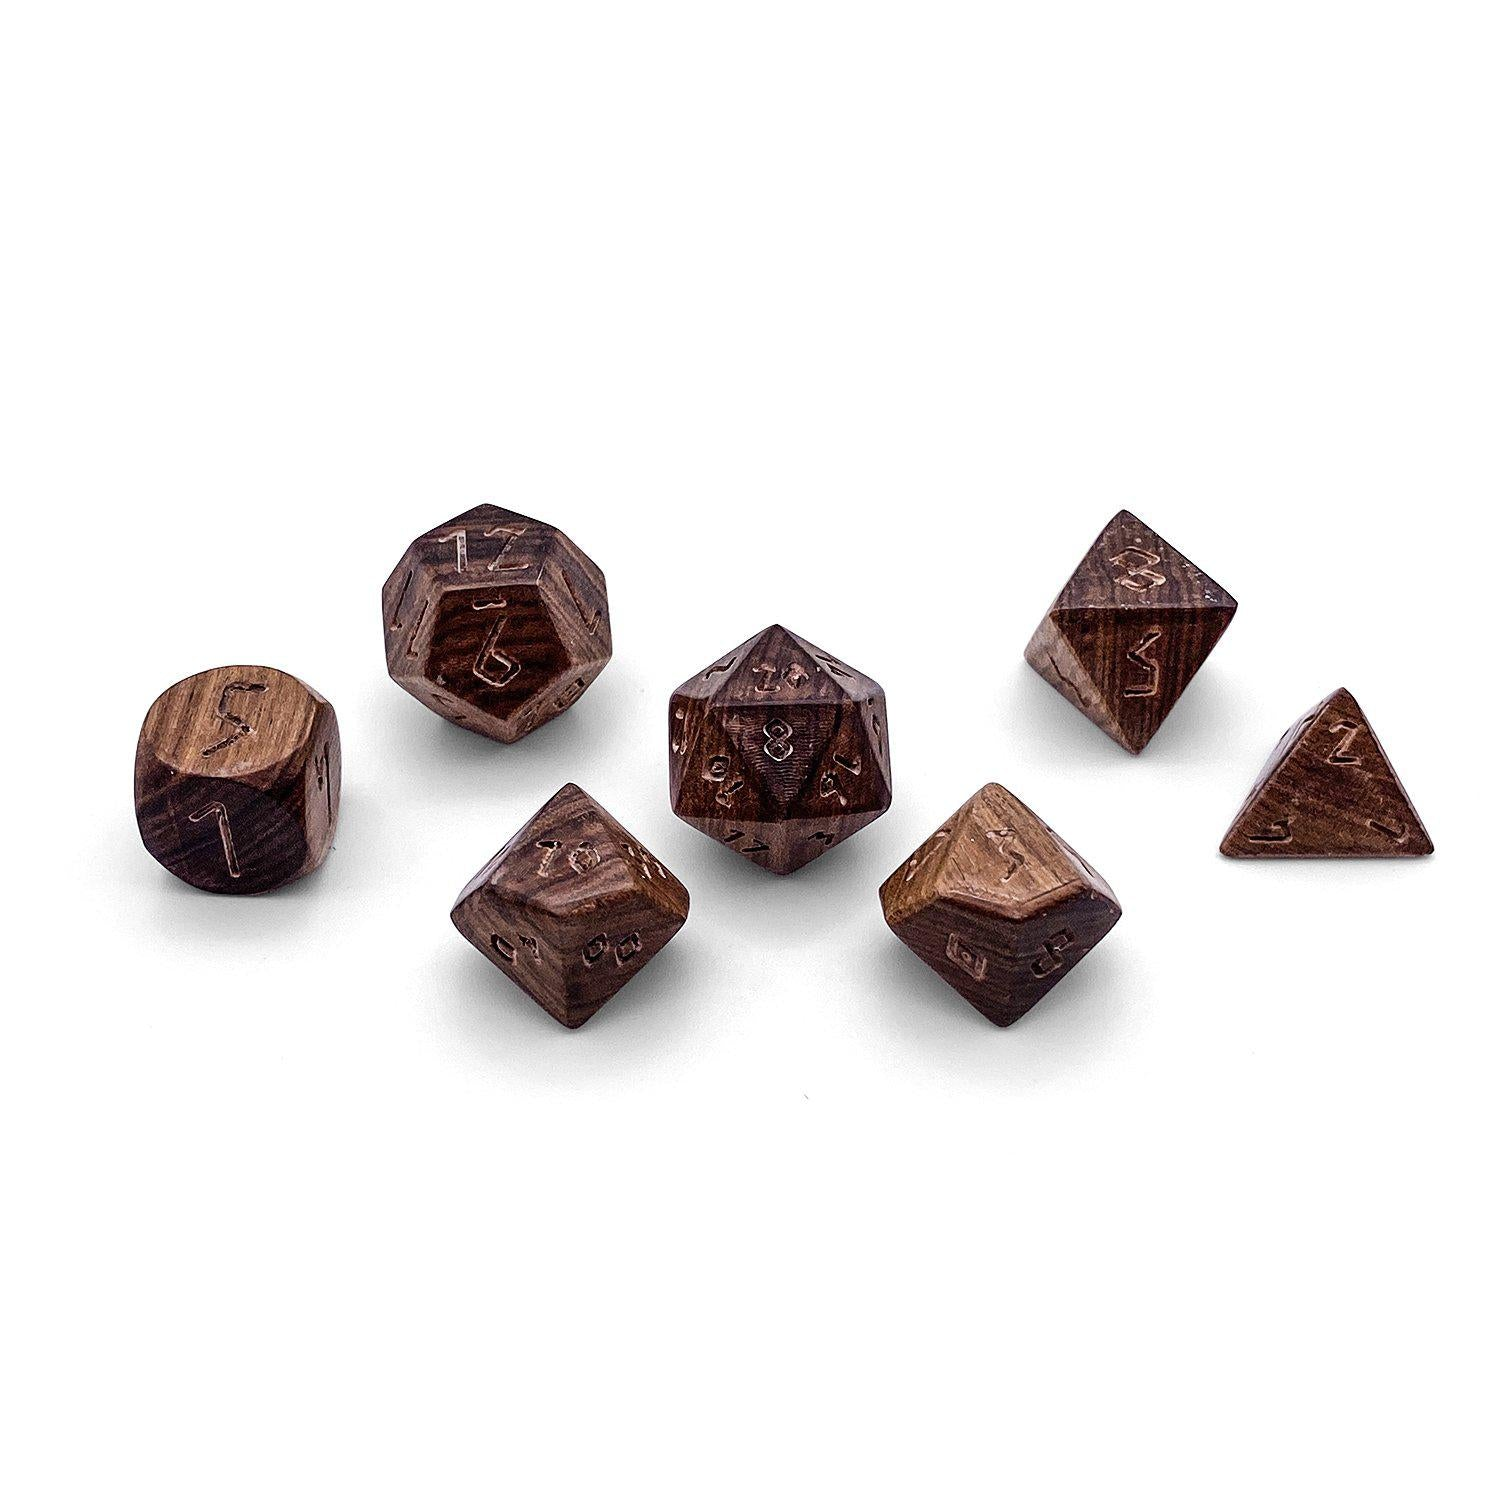 7 piece Wooden Dice Set - Asia Sweet Leaf